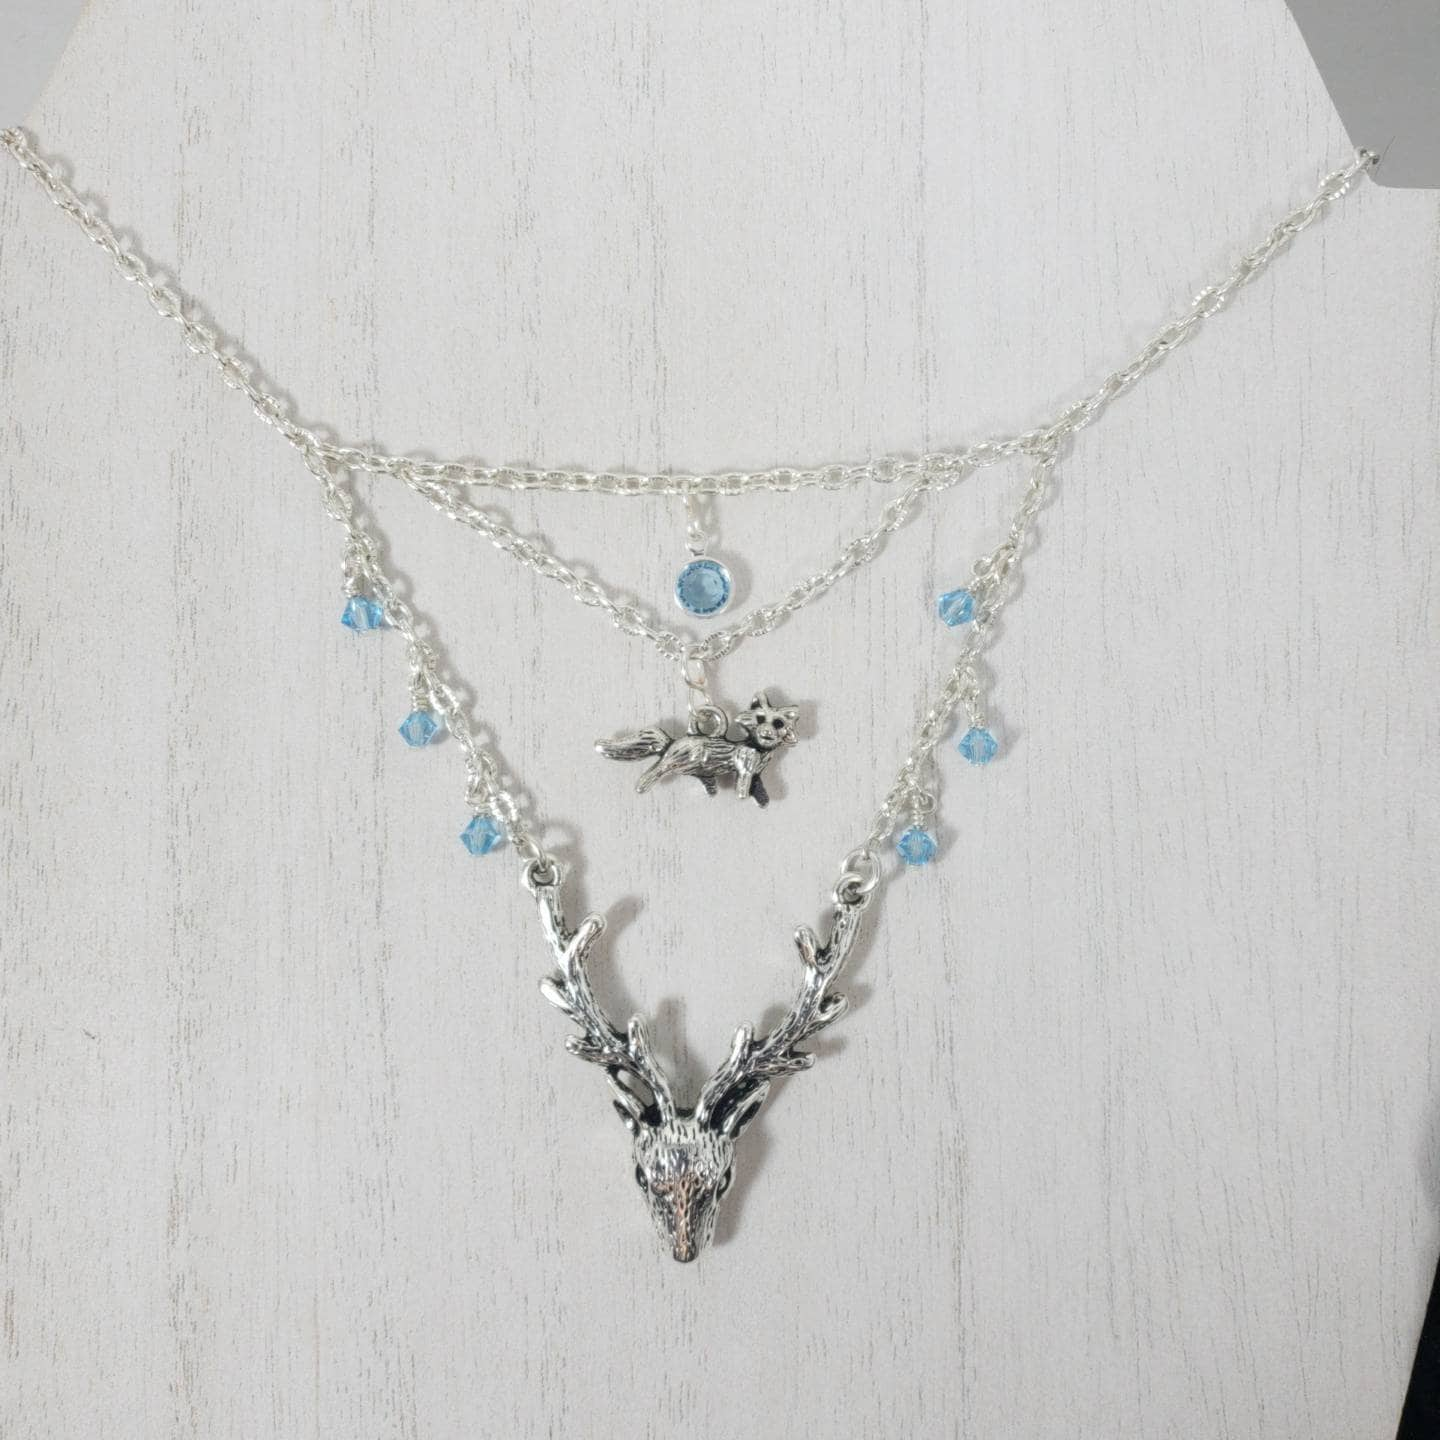 Vixen And Stag Necklace Hotwife Kinky Lifestyle Jewelry Etsy